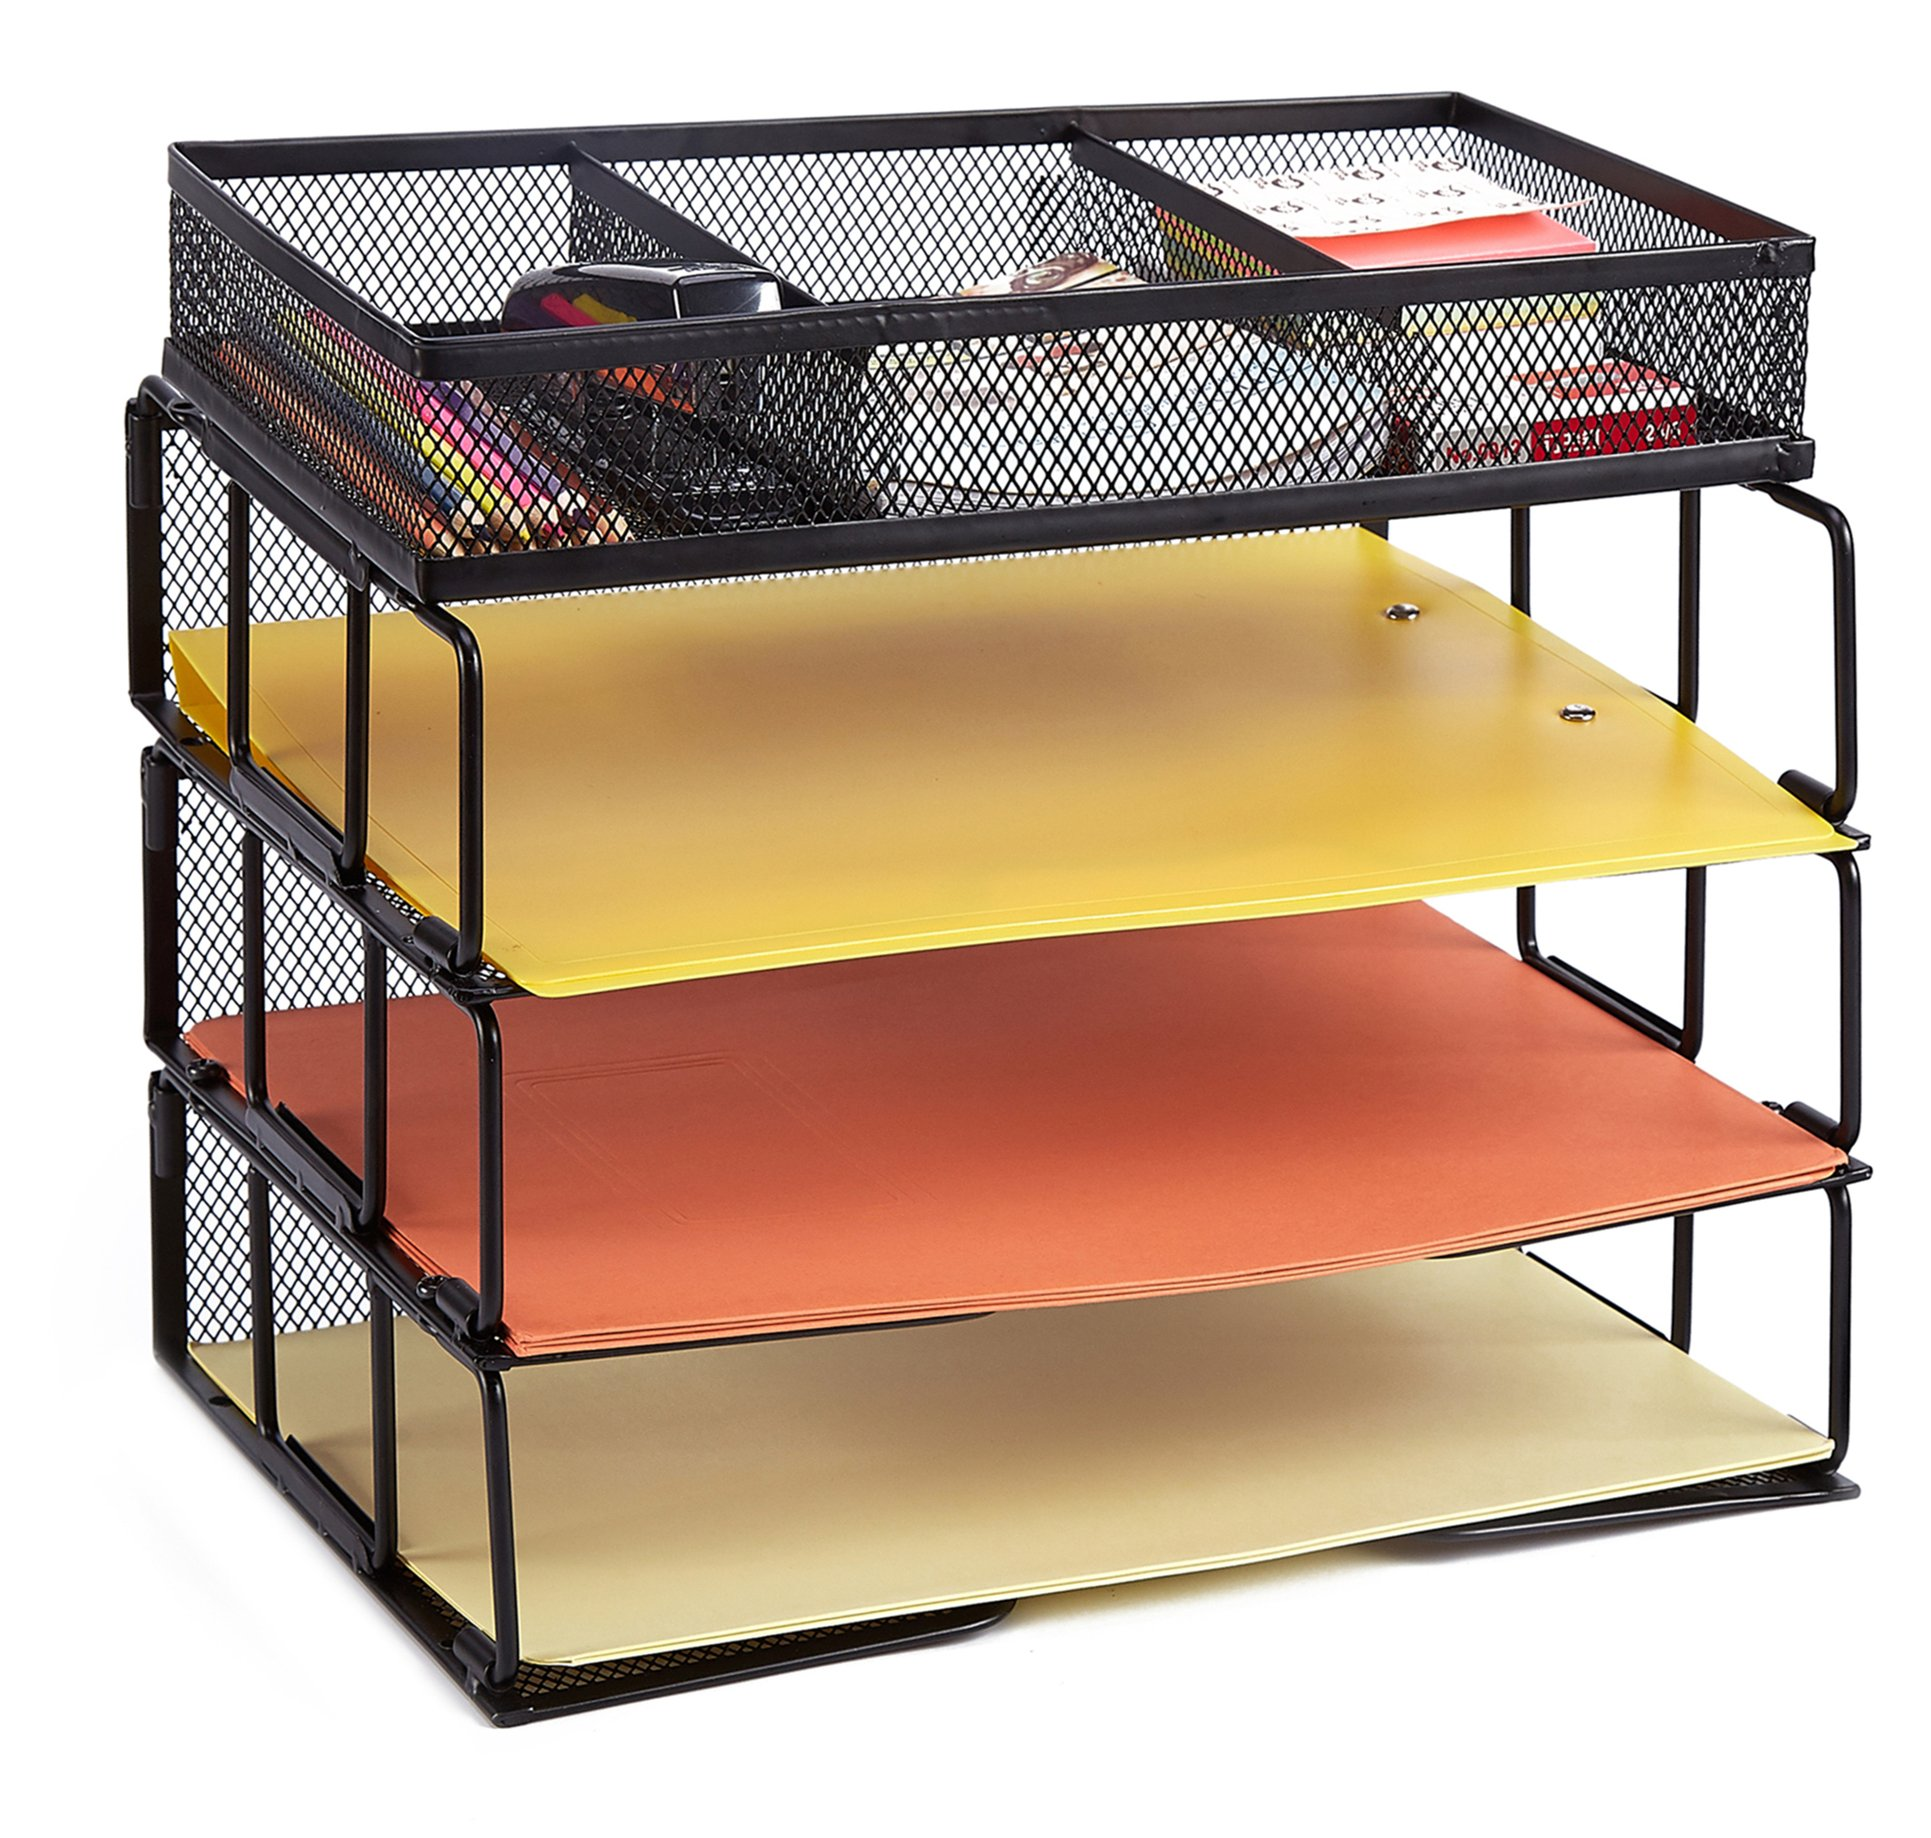 proaid mesh desk organizer 3 tier office stackable desktop file organizer letter tray paper organizer with 3 compartments black